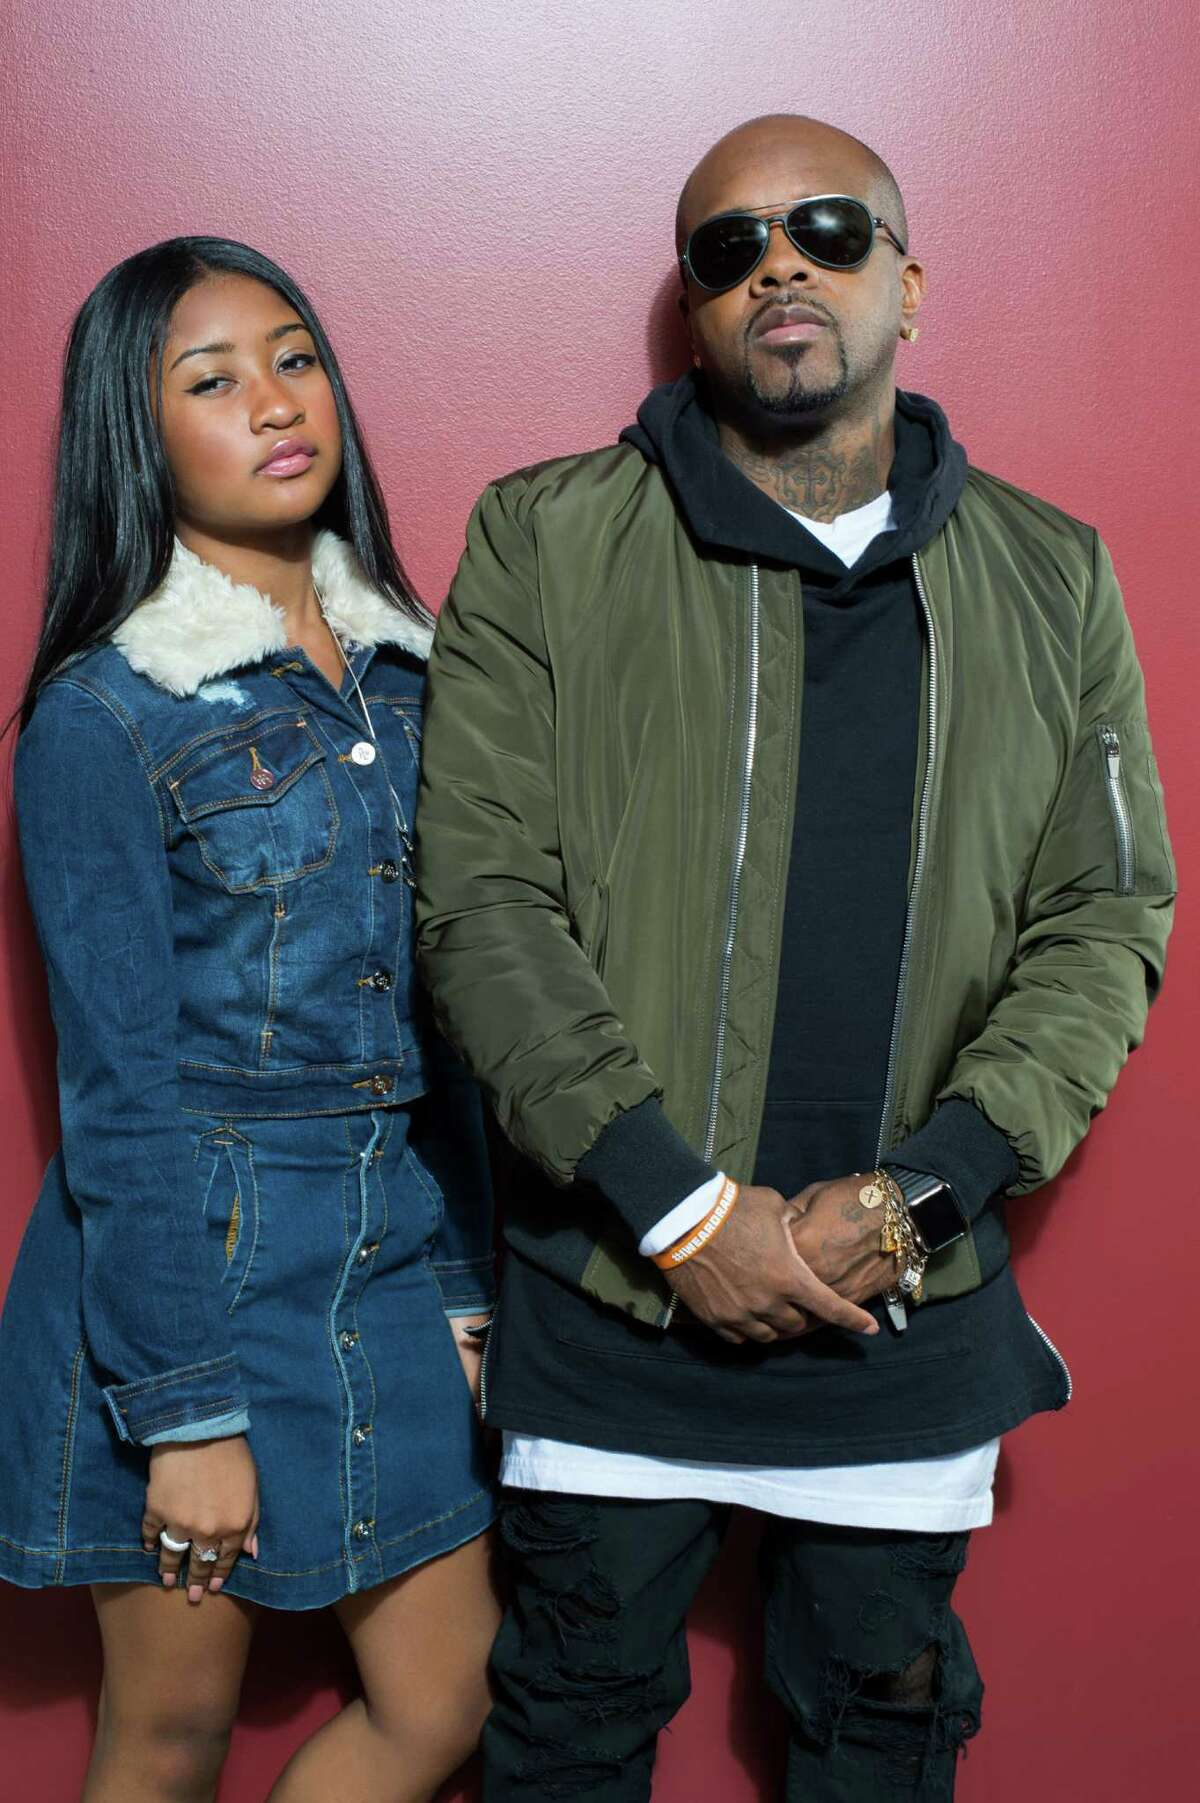 Young Lyric and Jermaine Dupri star in Lifetimeís all-new unscripted series, The Rap Game.